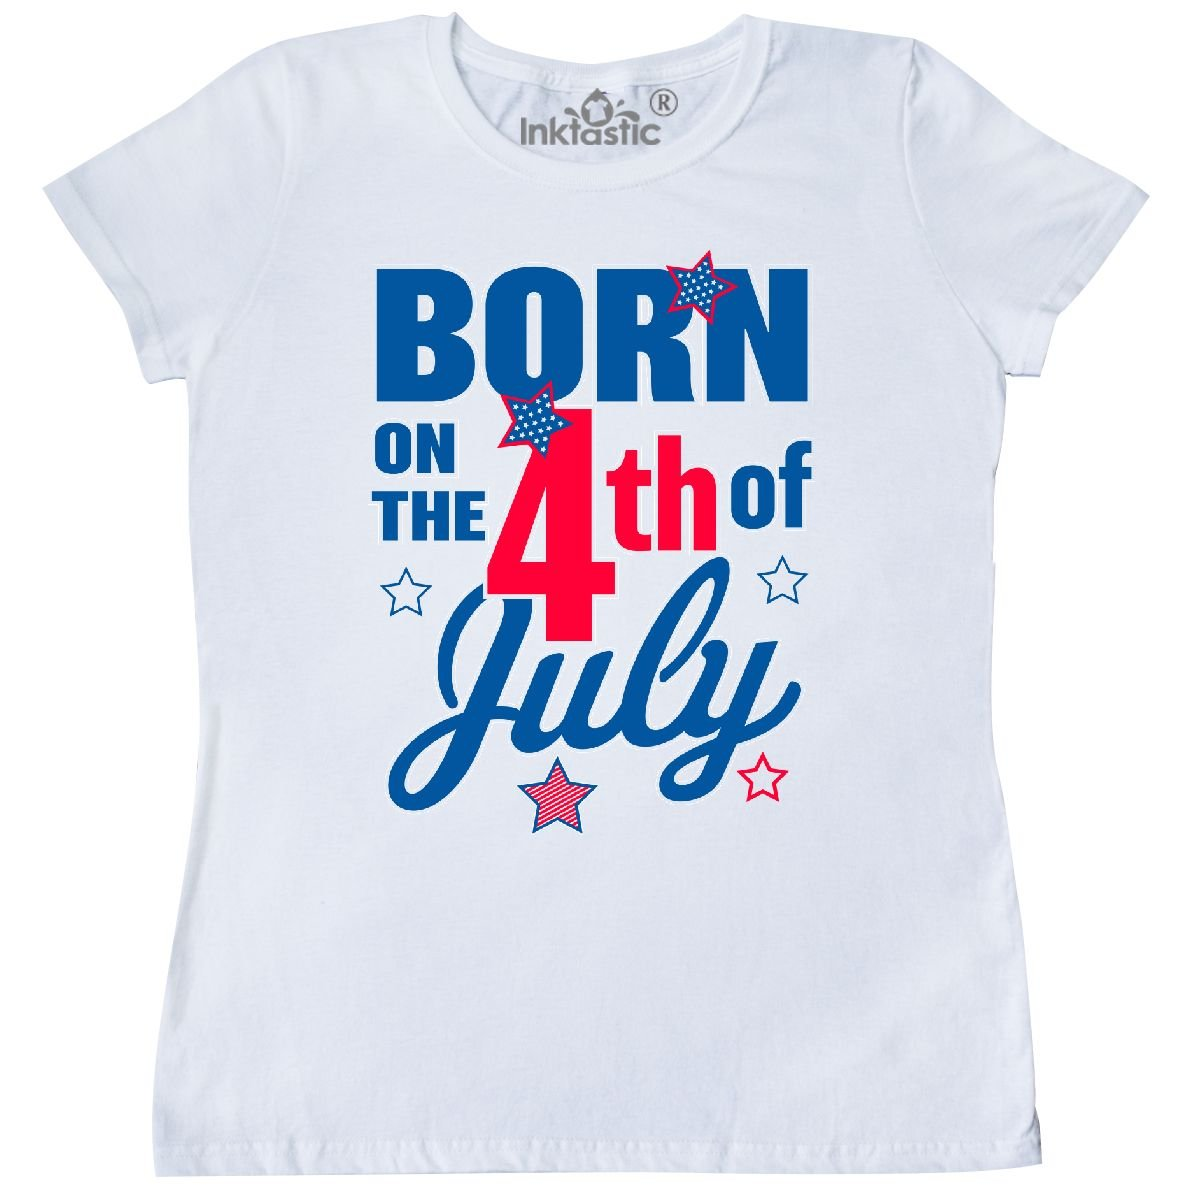 11df3bf4ca5 Amazon.com  inktastic - Born on The 4th of July Women s T-Shirt  Clothing